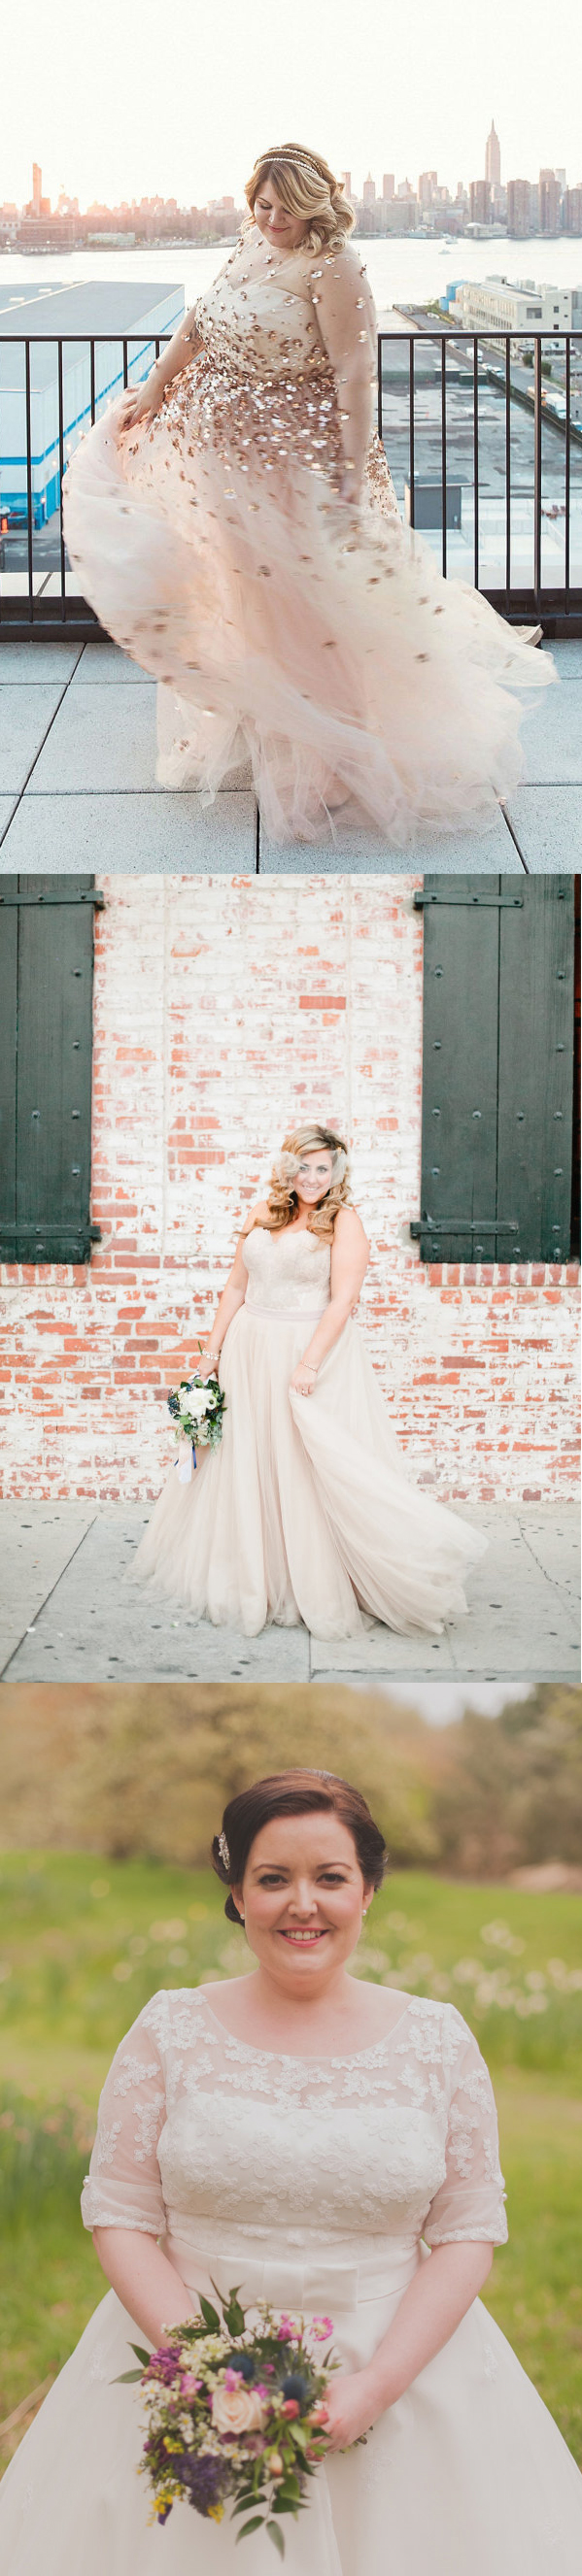 20 extravagantly gorgeous wedding dresses that will set your heart ...